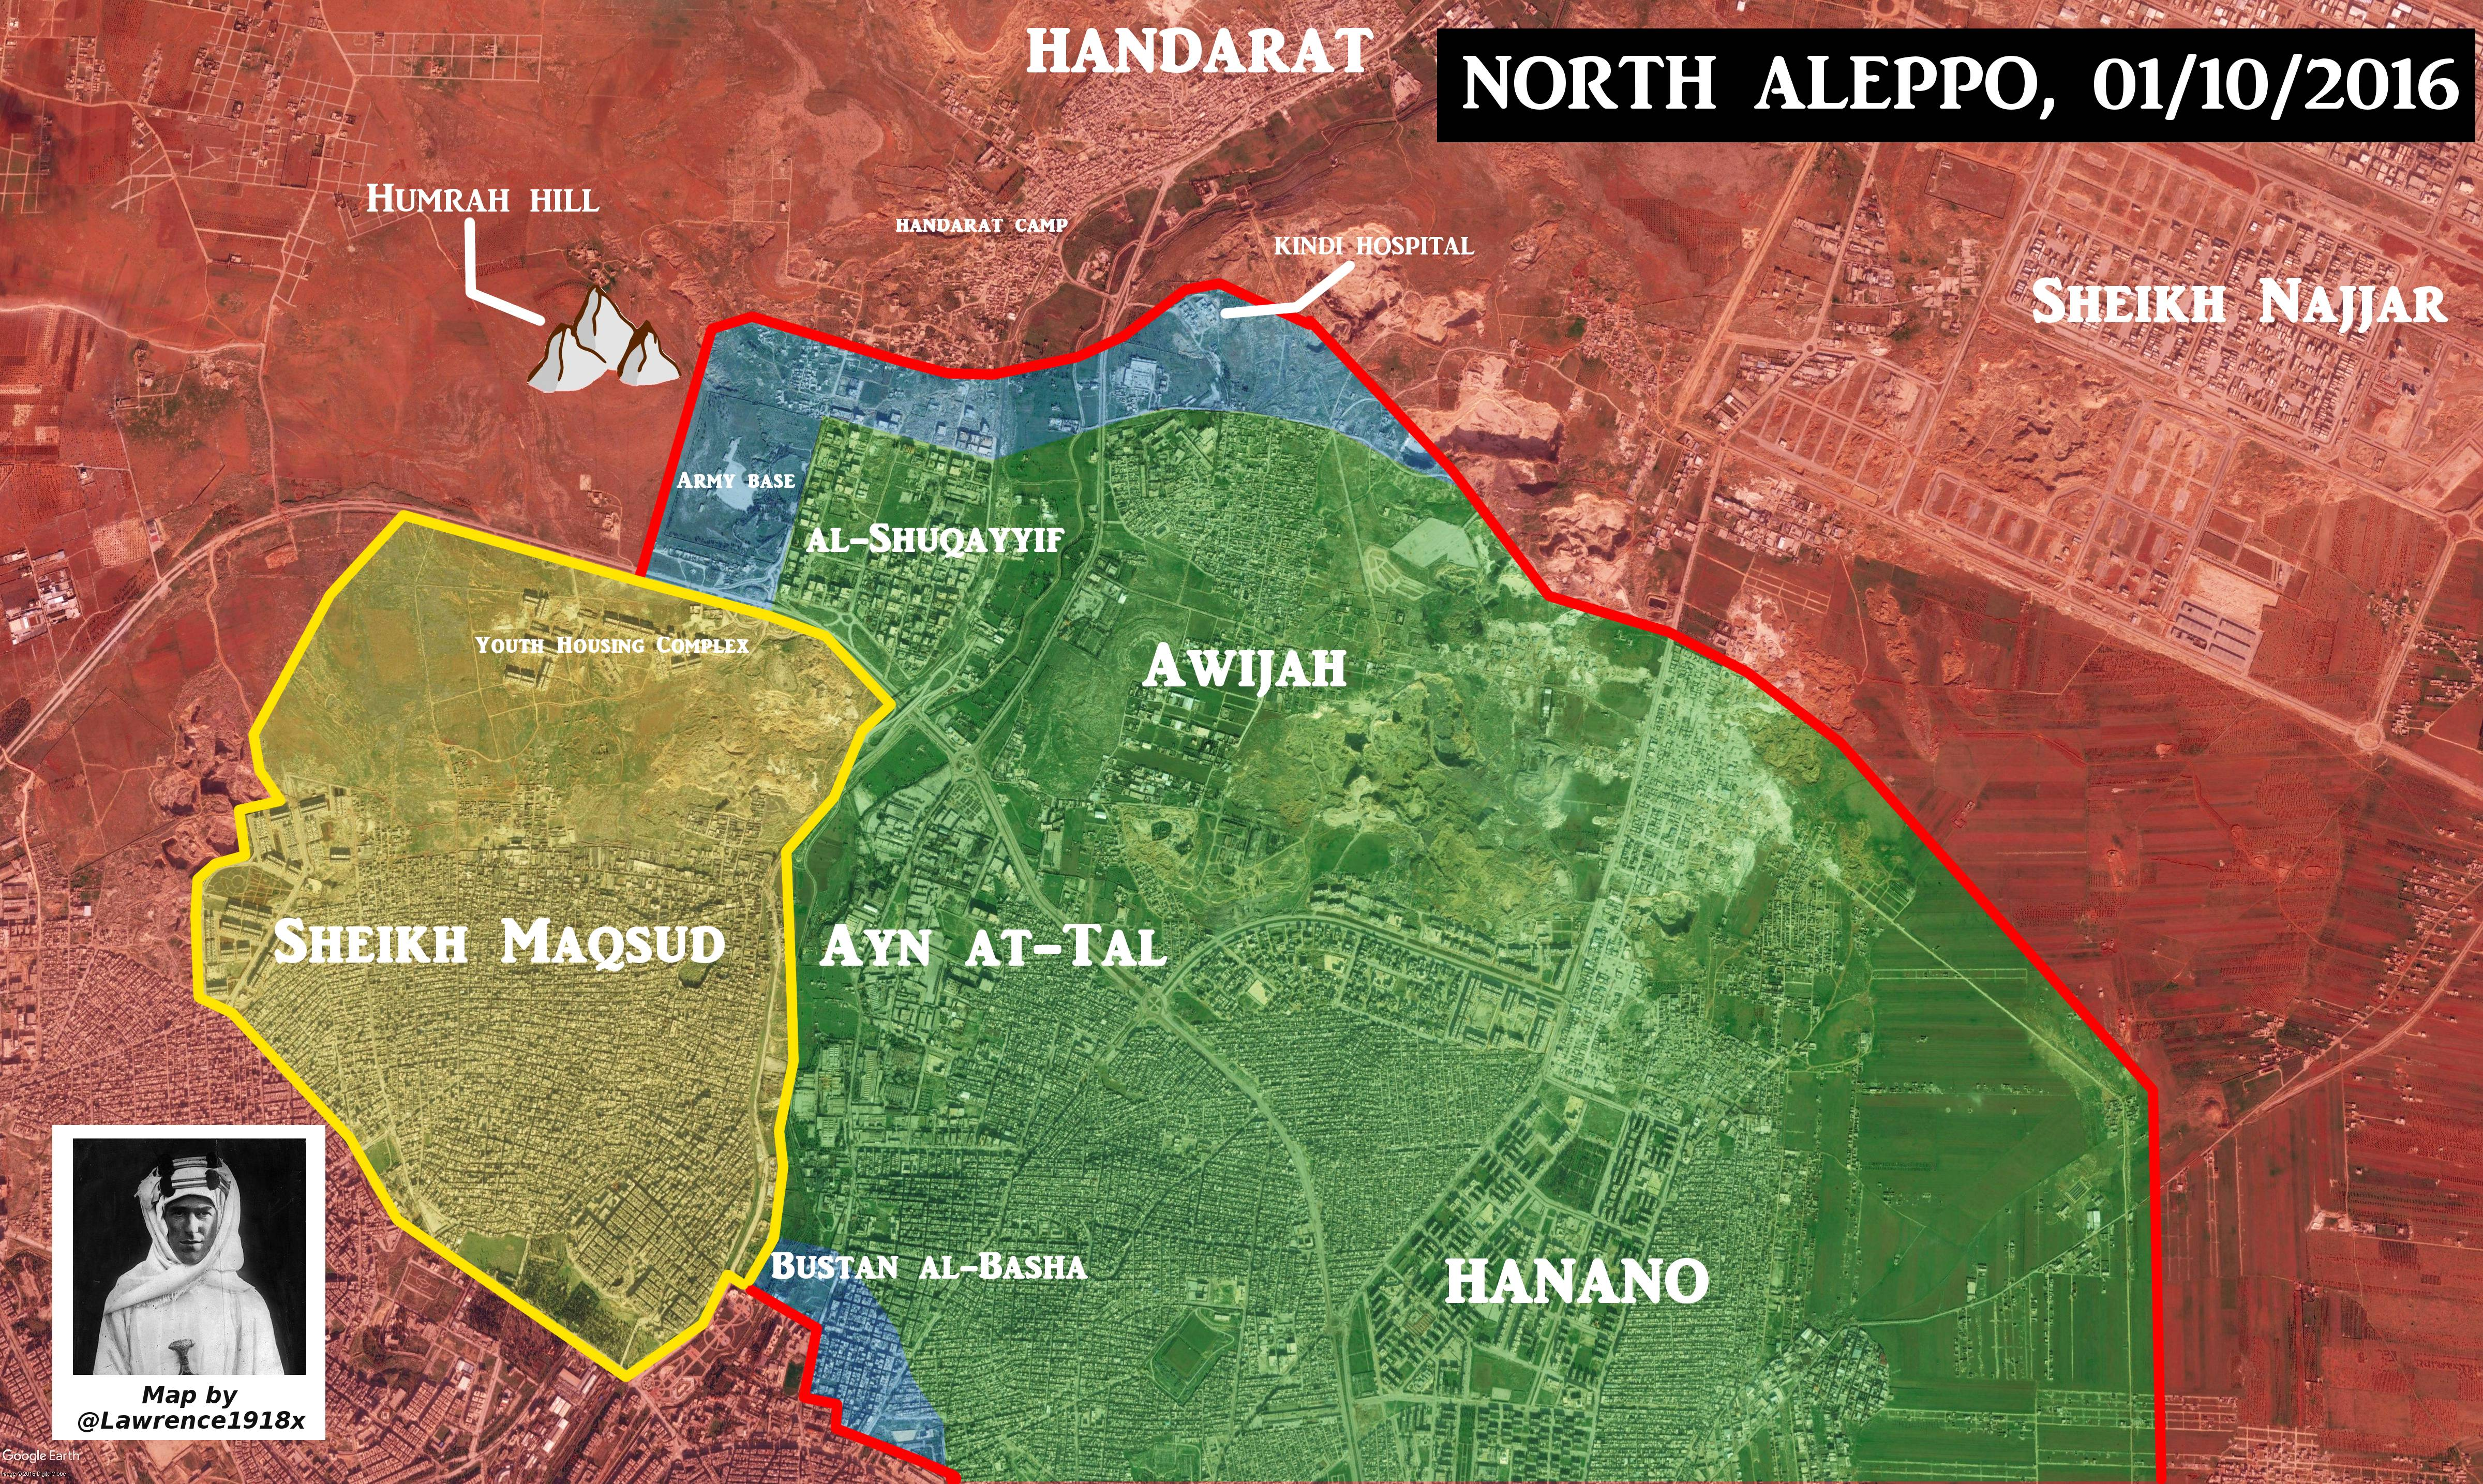 Government Forces Secure Strategic Humrah Hill, Set Fire Control of Shuqayyif Neighborhood of Aleppo City